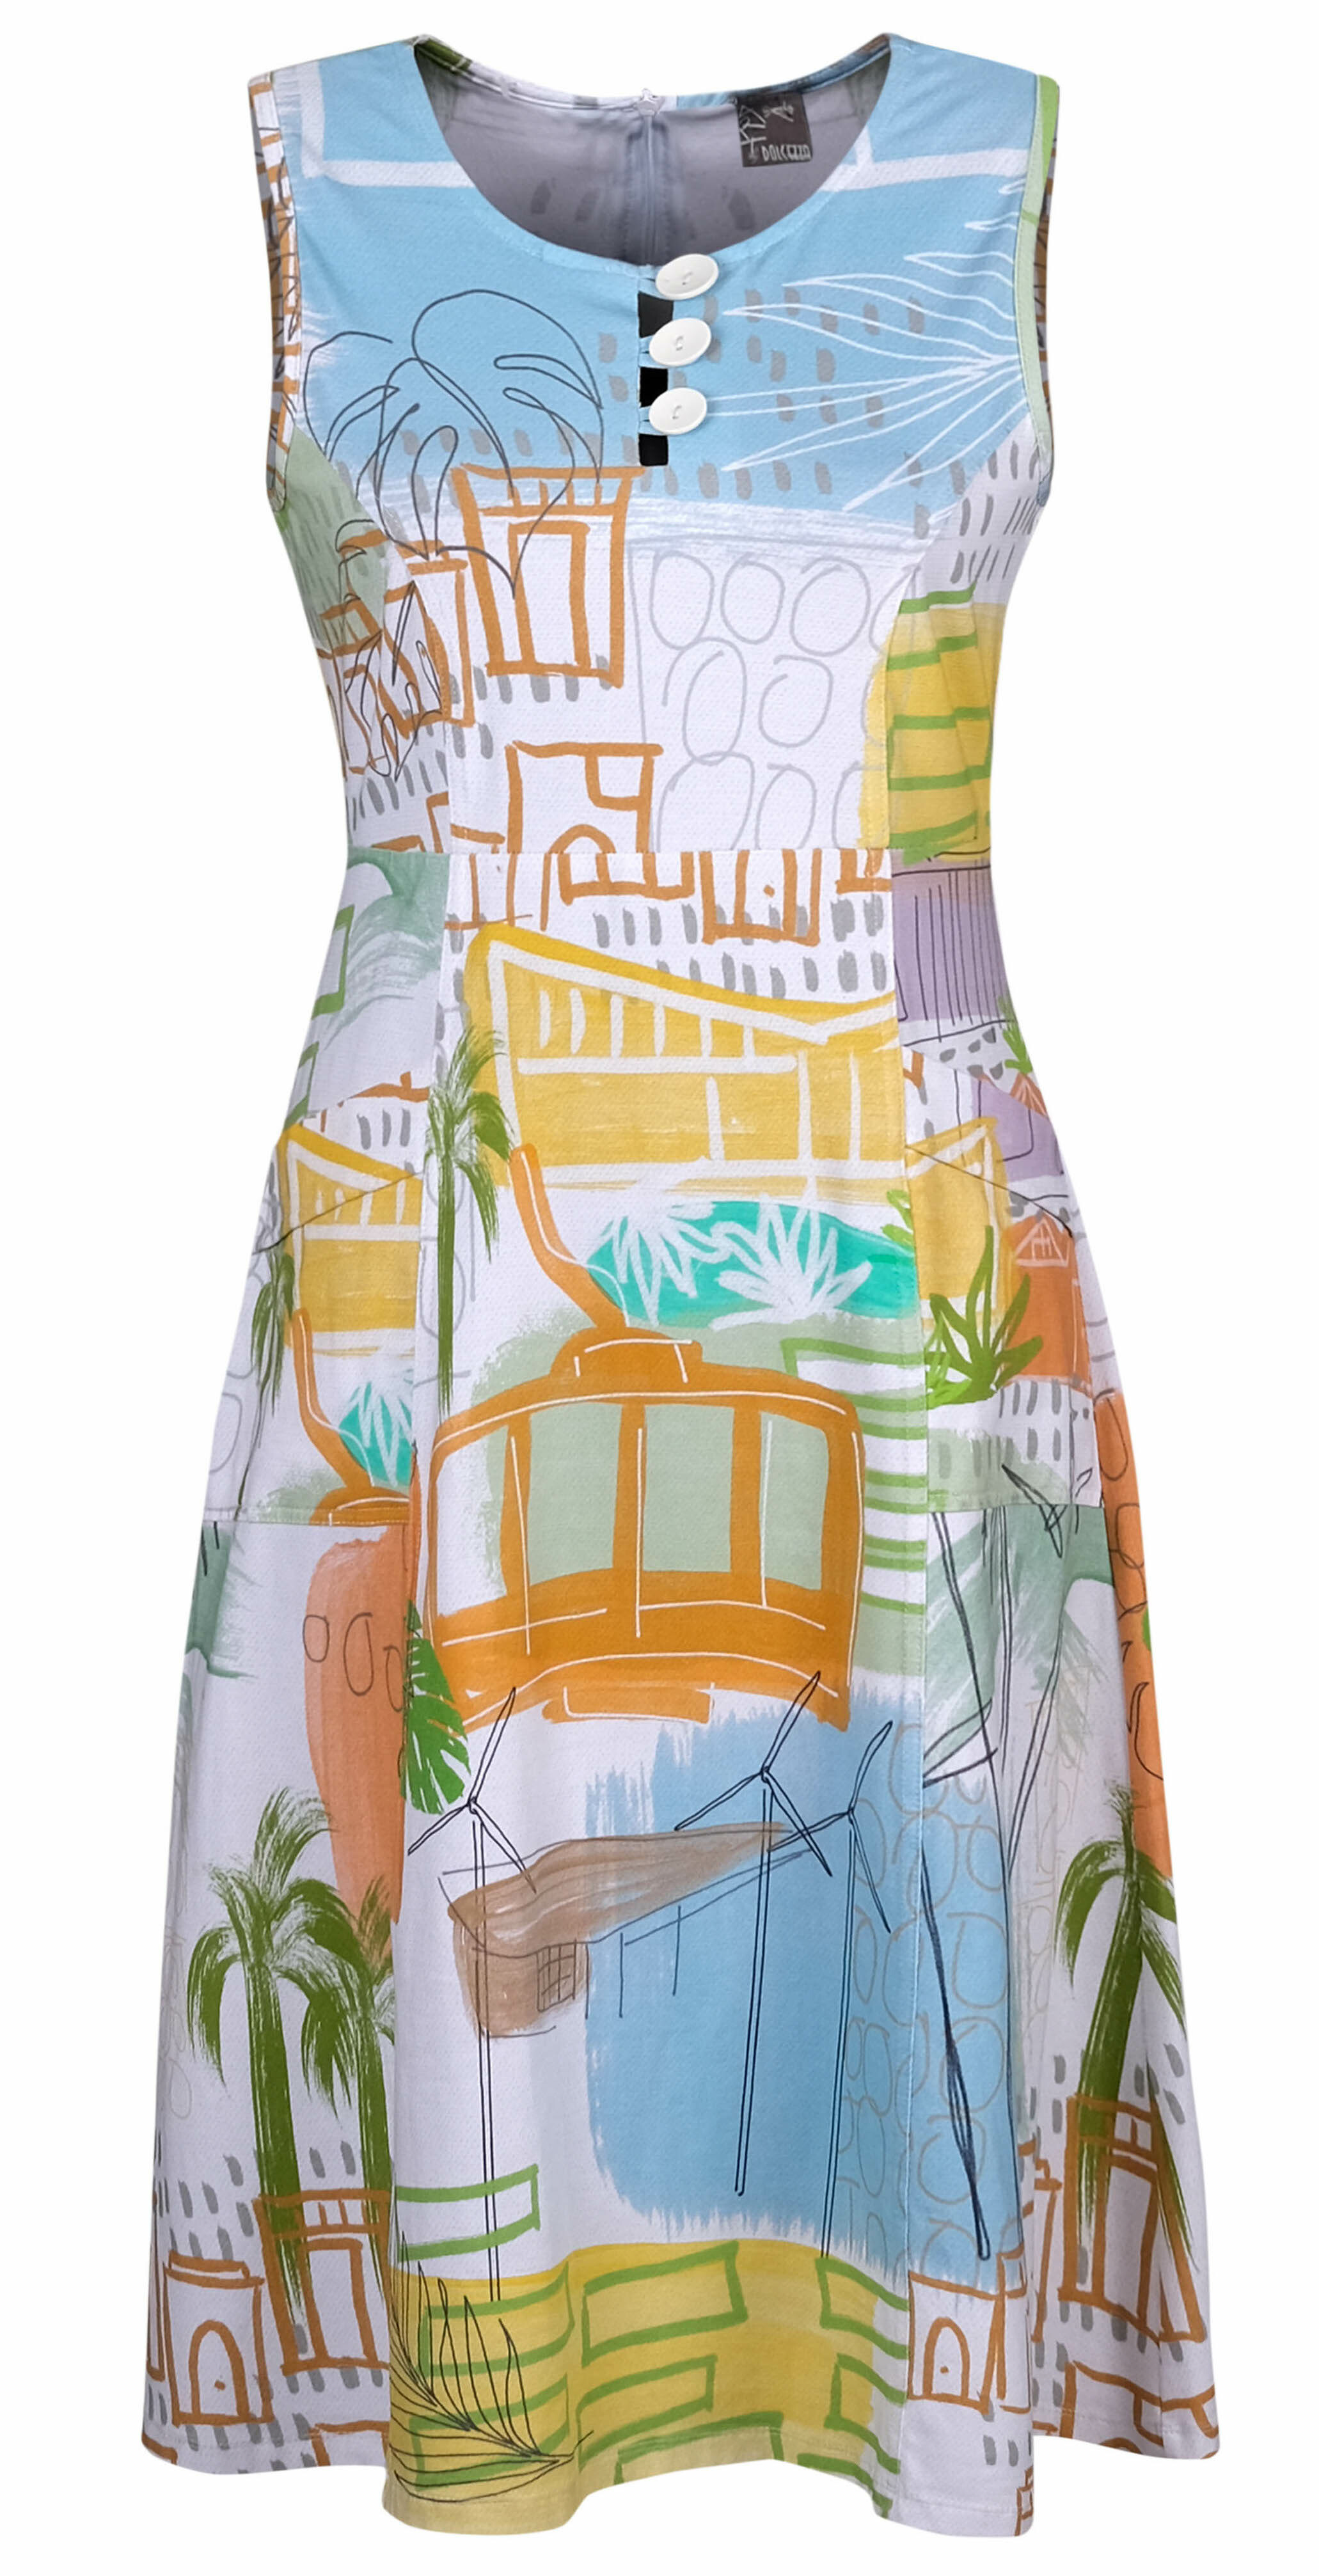 Simply Art Dolcezza: Palm Springs Cityscape Abstract Art Dress (1 Left!)